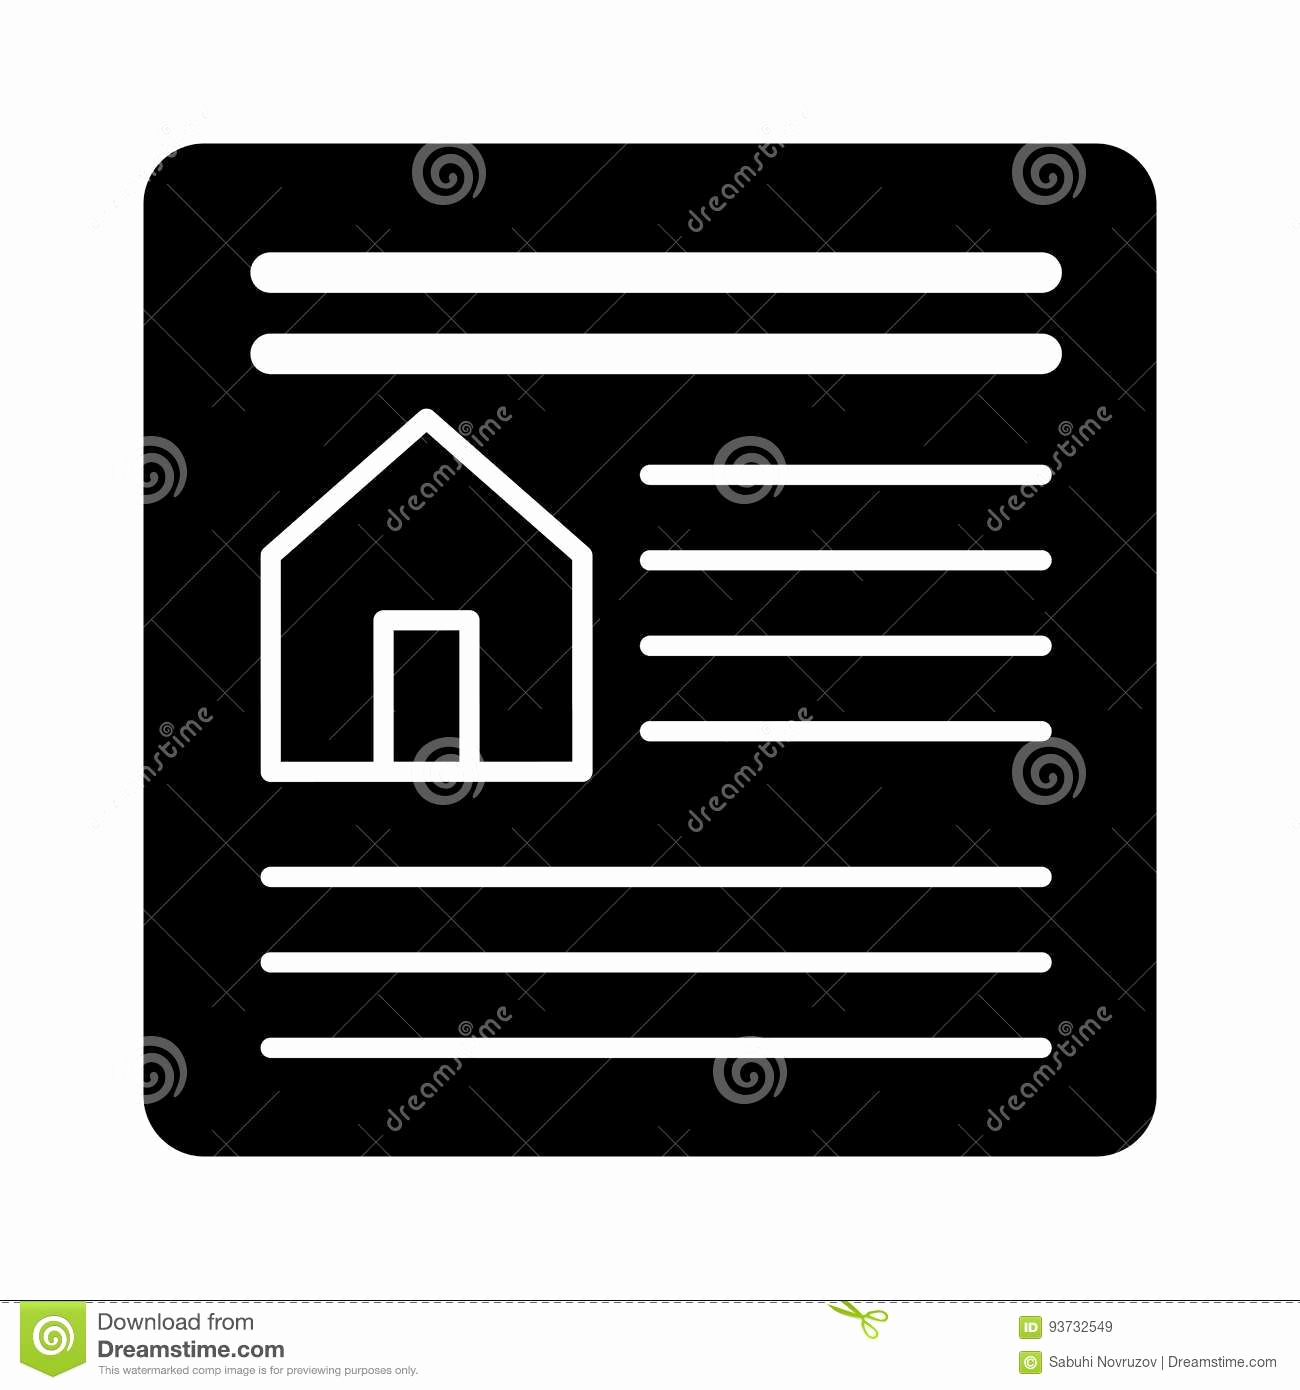 Simple Real Estate Contract Best Of Real Estate Contract Simple Vector Icon Black and White